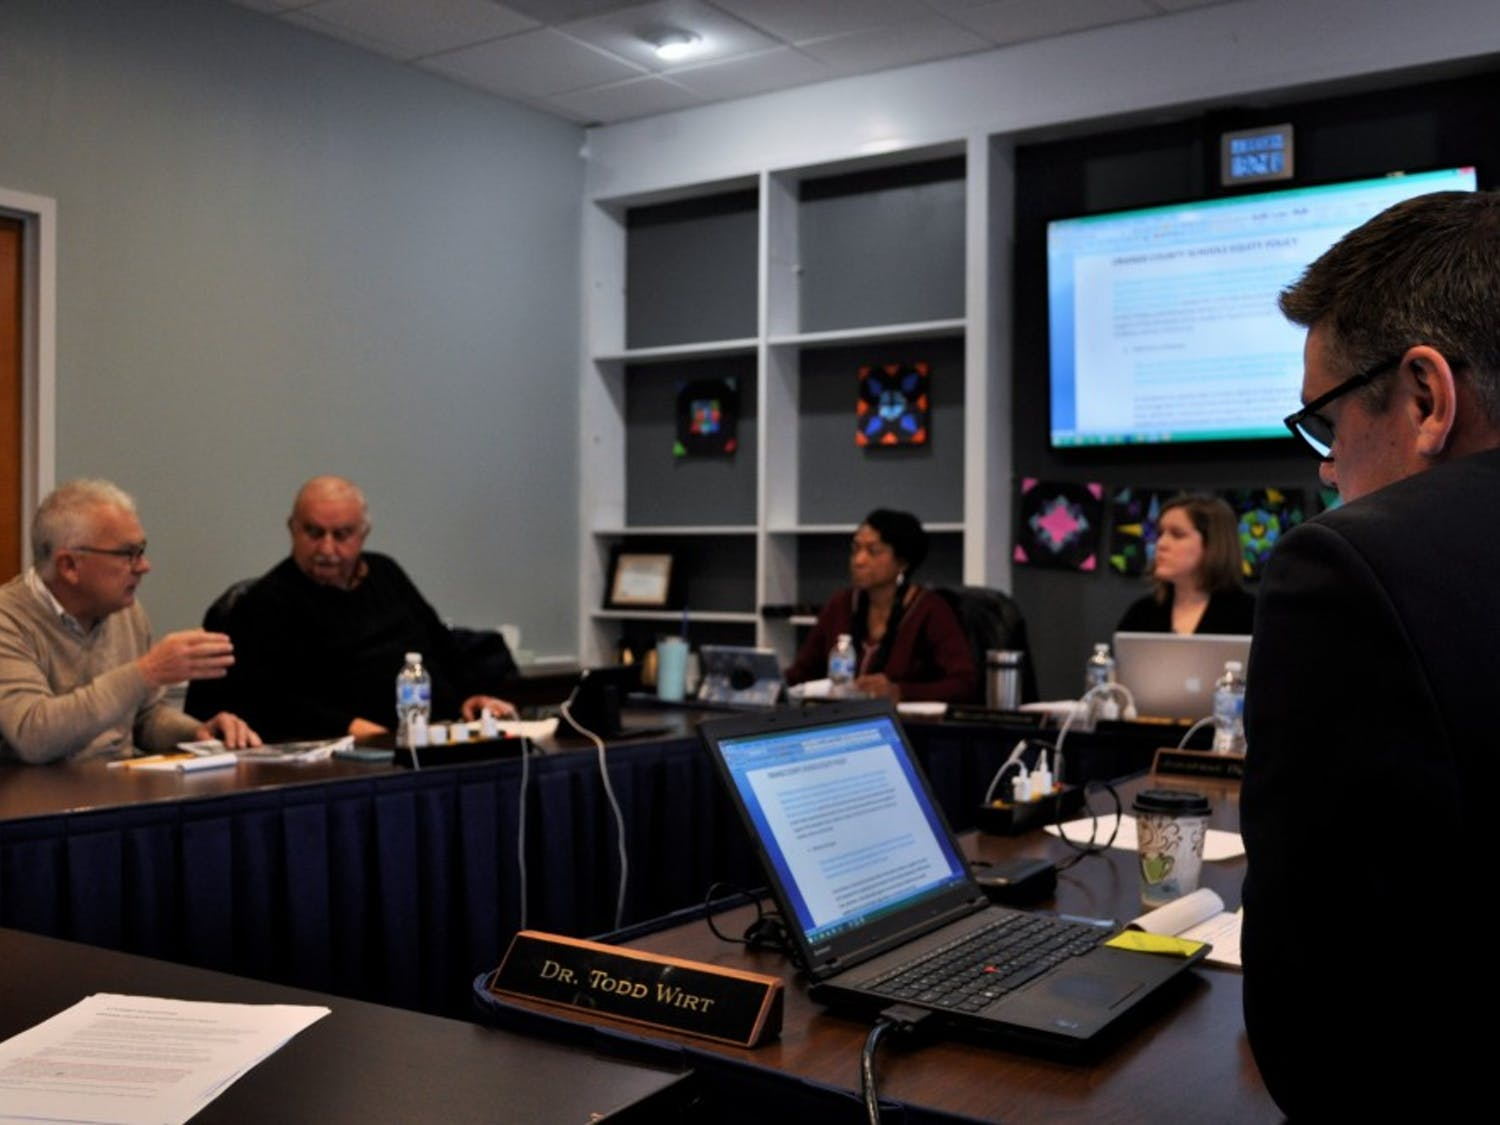 The Orange County Board of Education discusses Board Policy 4125 regarding school assignments and transfers at a meeting on Wednesday, Jan. 16, 2019. The policy was presented for a first reading approval with a second reading waiver on Tuesday, Jan. 14, 2019.